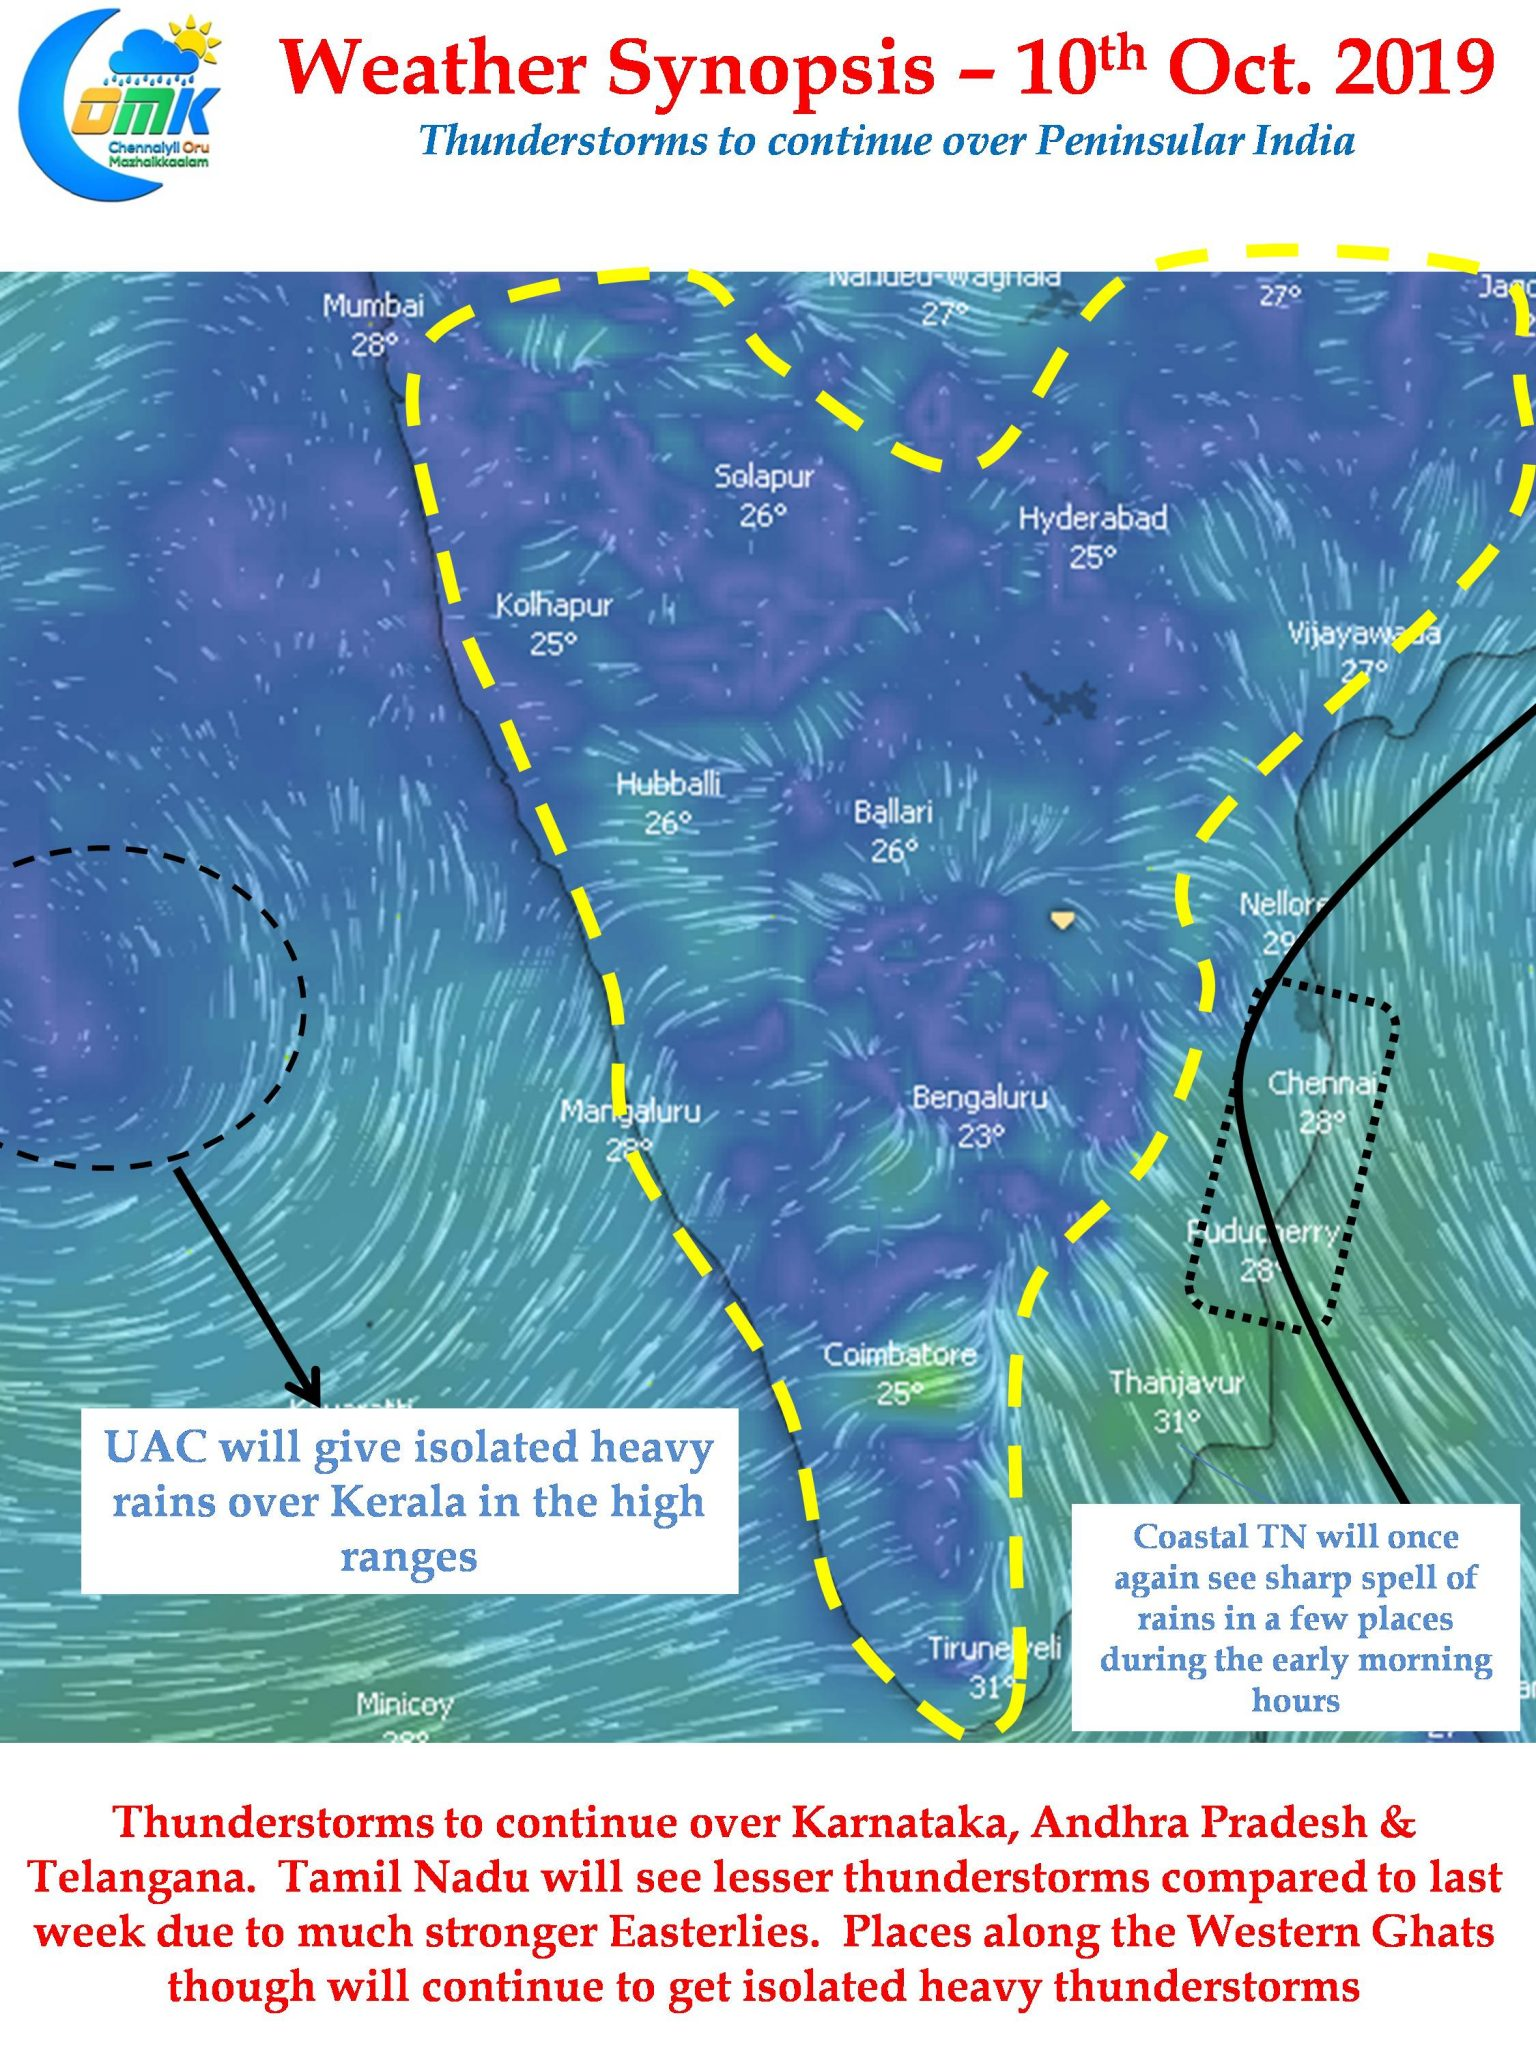 Thunderstorms over South India